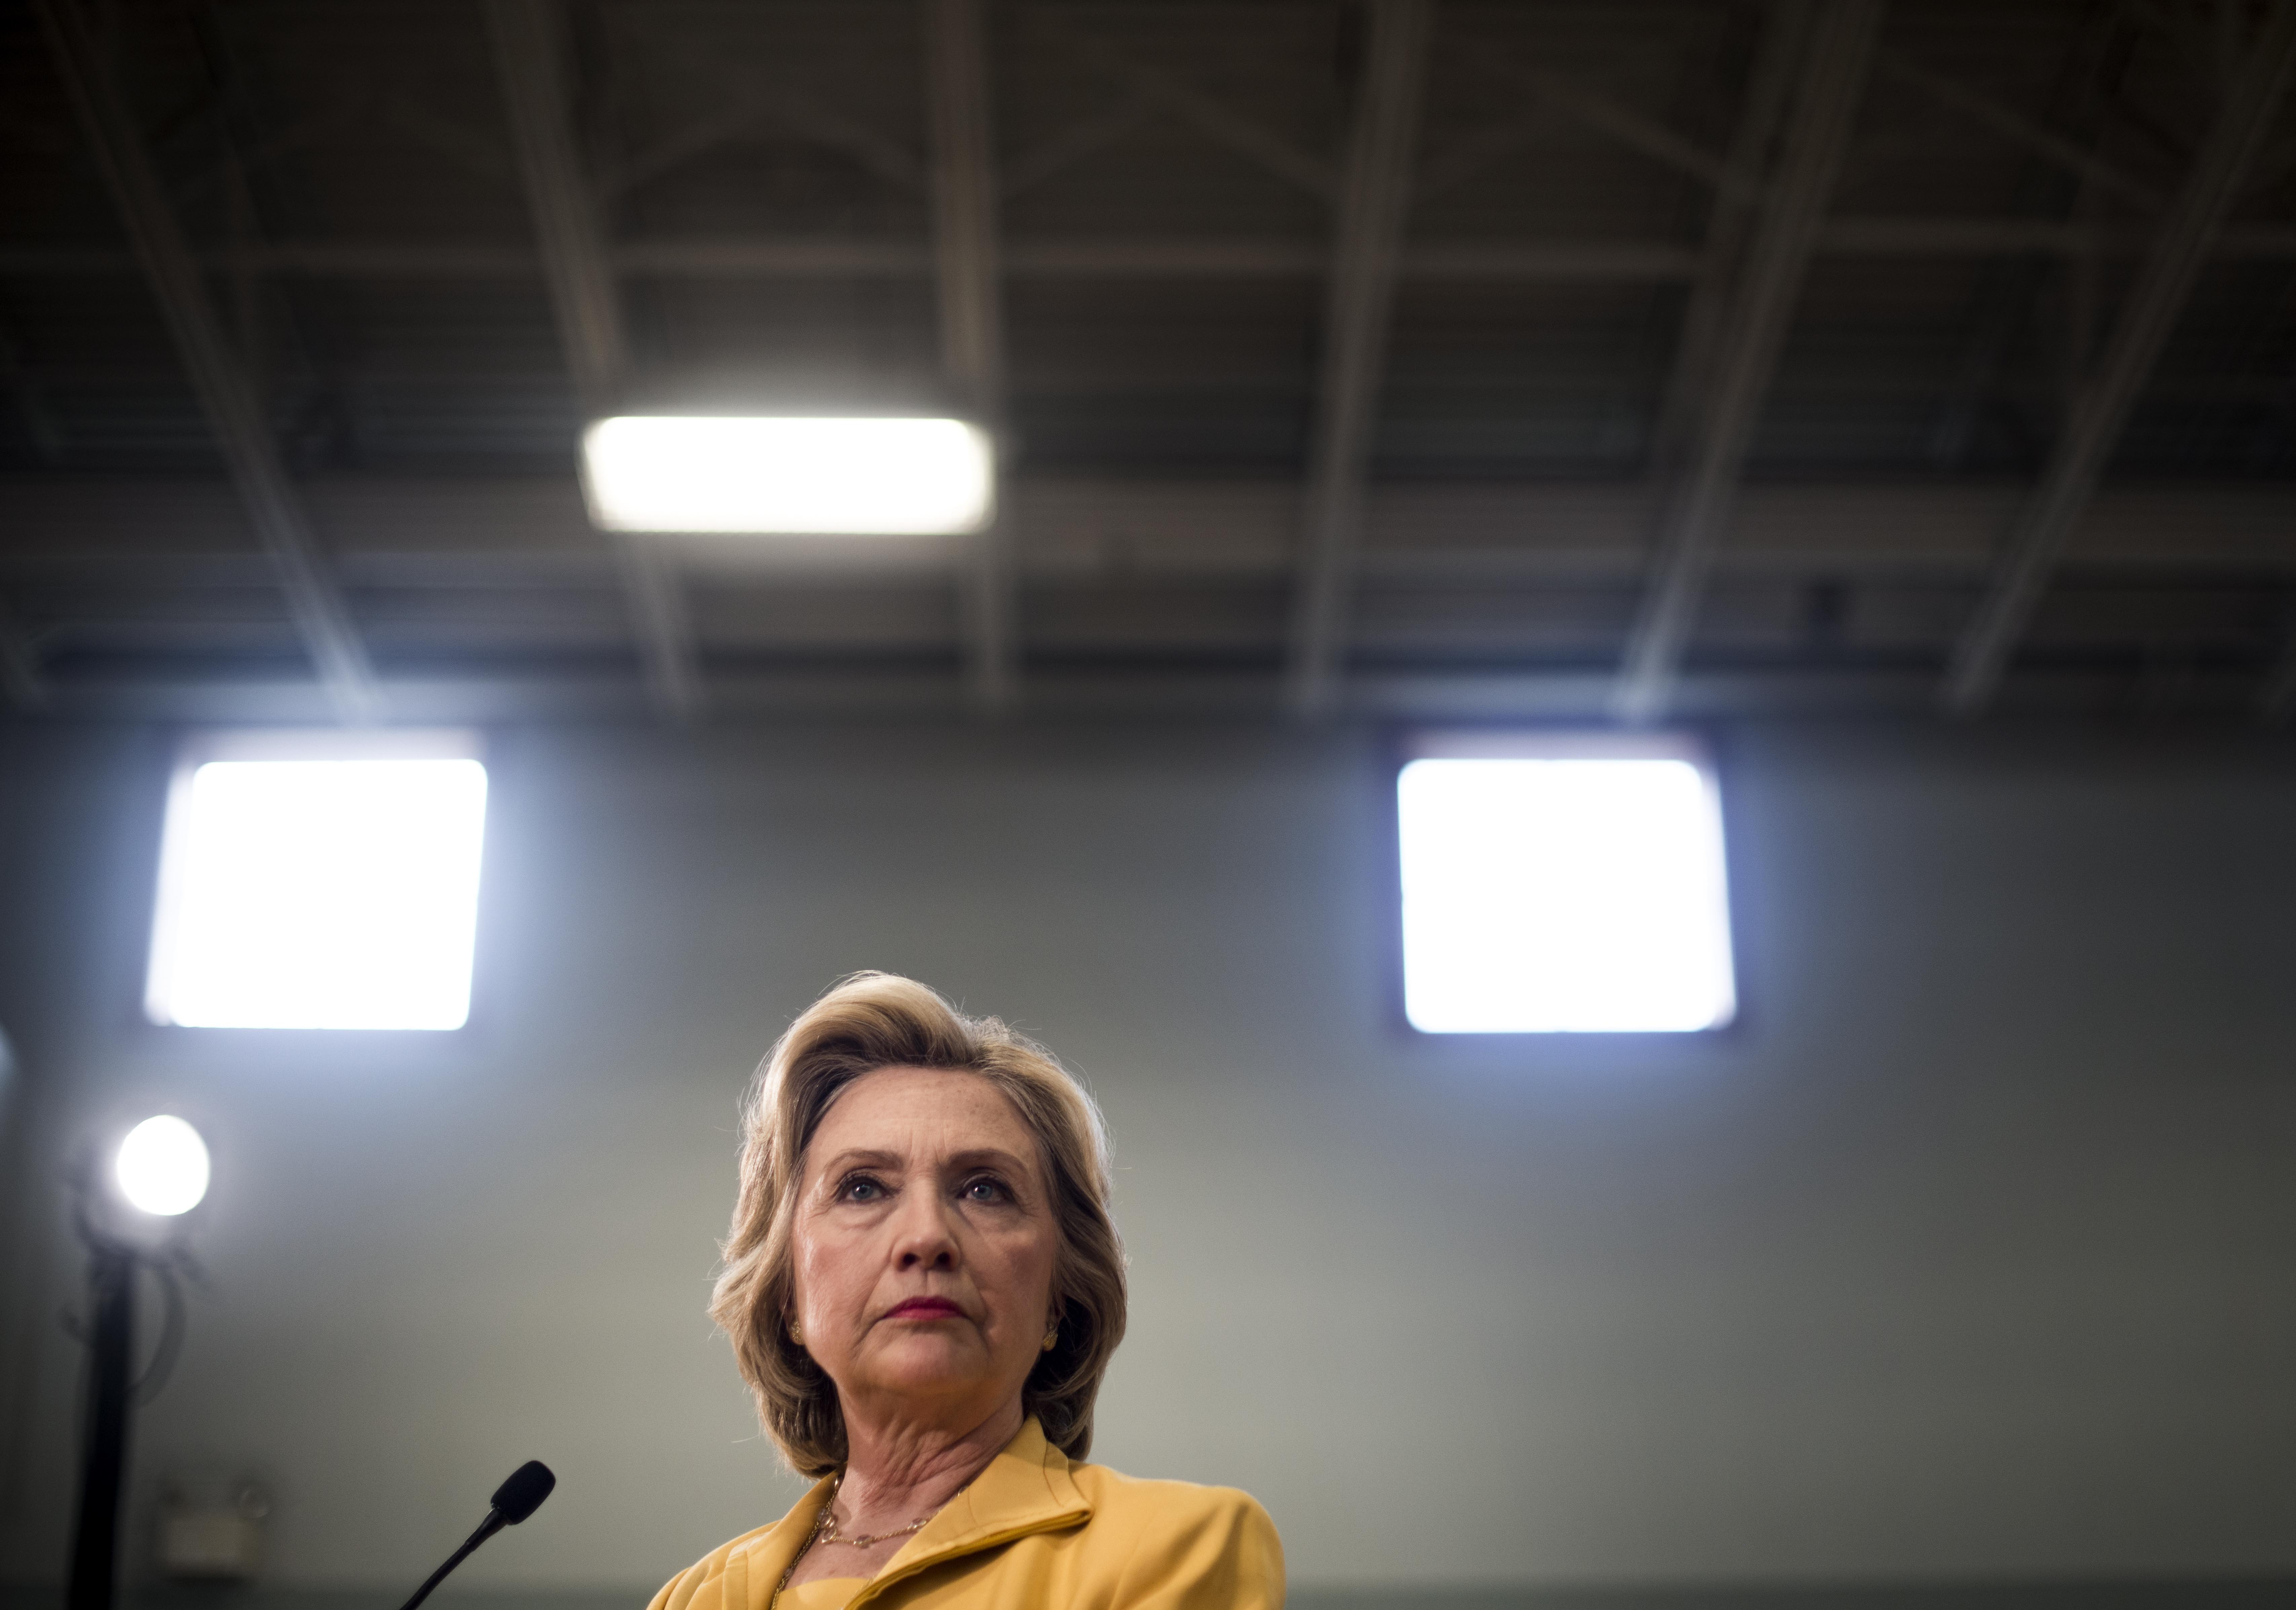 Secretary Hillary Clinton speaks to journalists after a town hall meeting in Nashua, New Hampshire, on July 28, 2015.